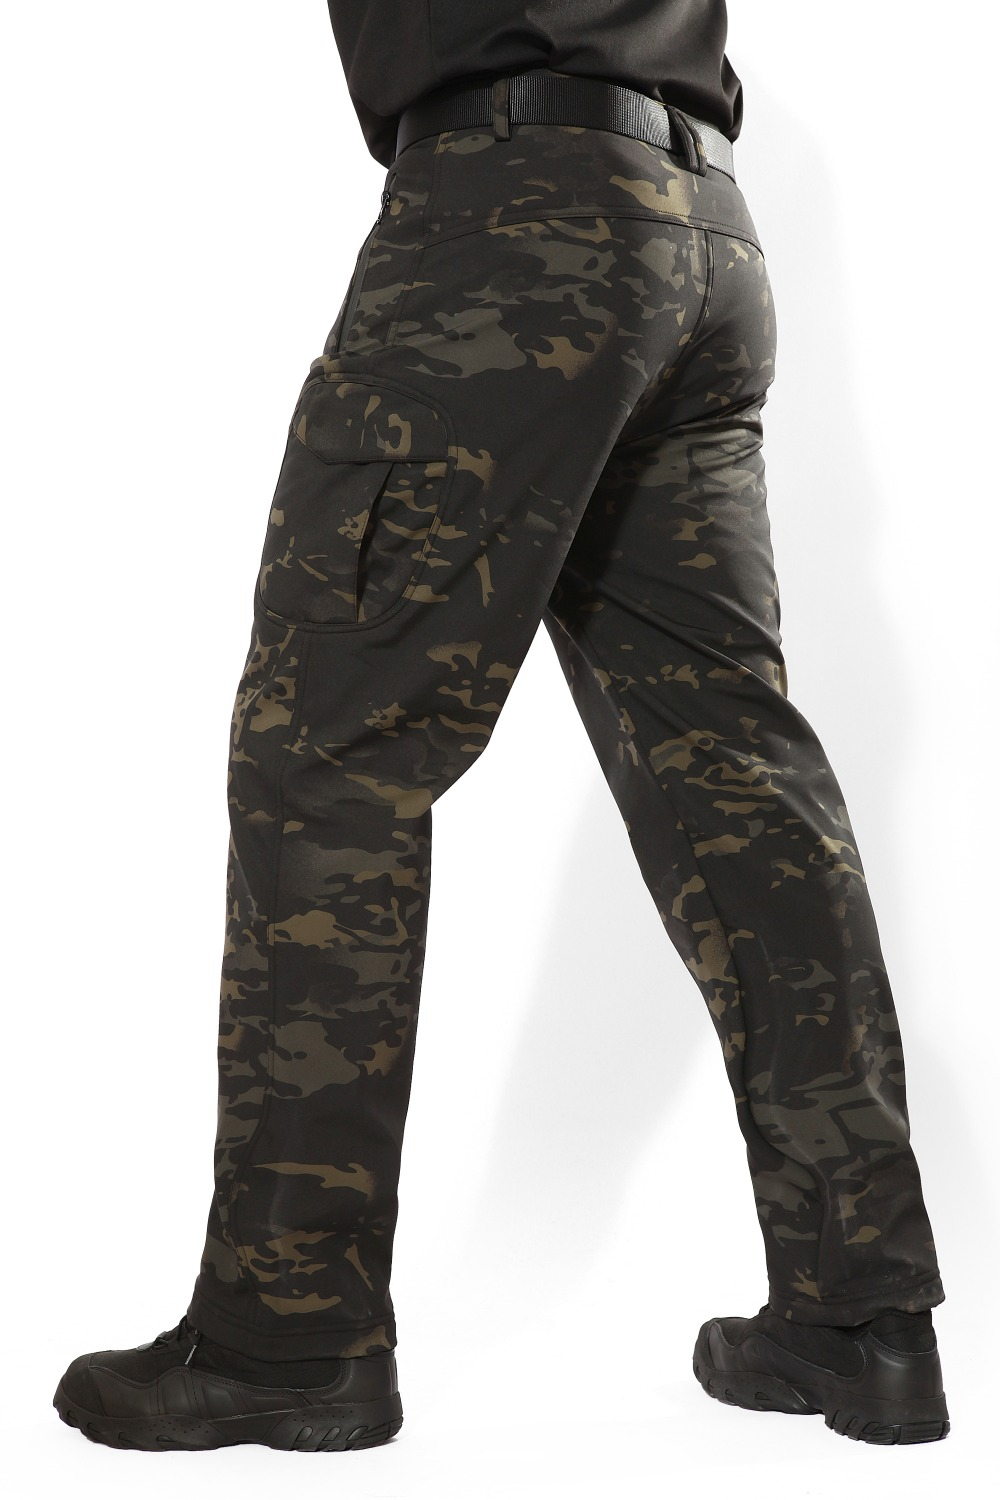 MEGE Soft Shell Tactical Camouflage Pants Men Combat Waterproof Military Cargo Warm Fleece Camo Winter Warm Army Modis Trousers 18